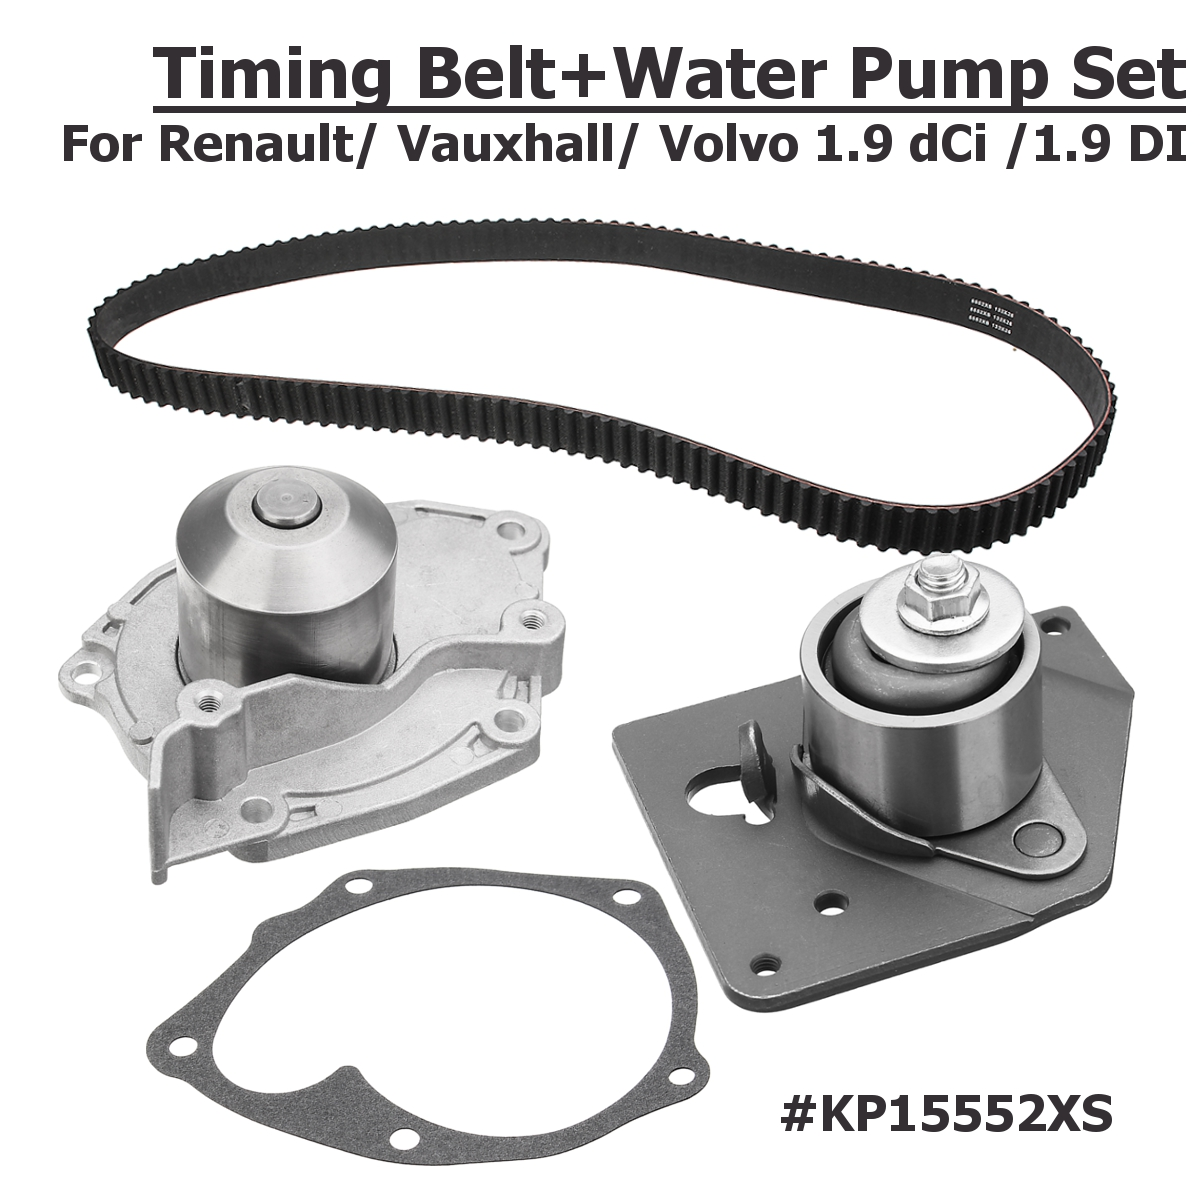 For Renault for Vauxhall for Volvo 1.9 dCi for 1.9 DI Engines 201523385842 GATES KP15552XS Timing Belt+Water Pump Set